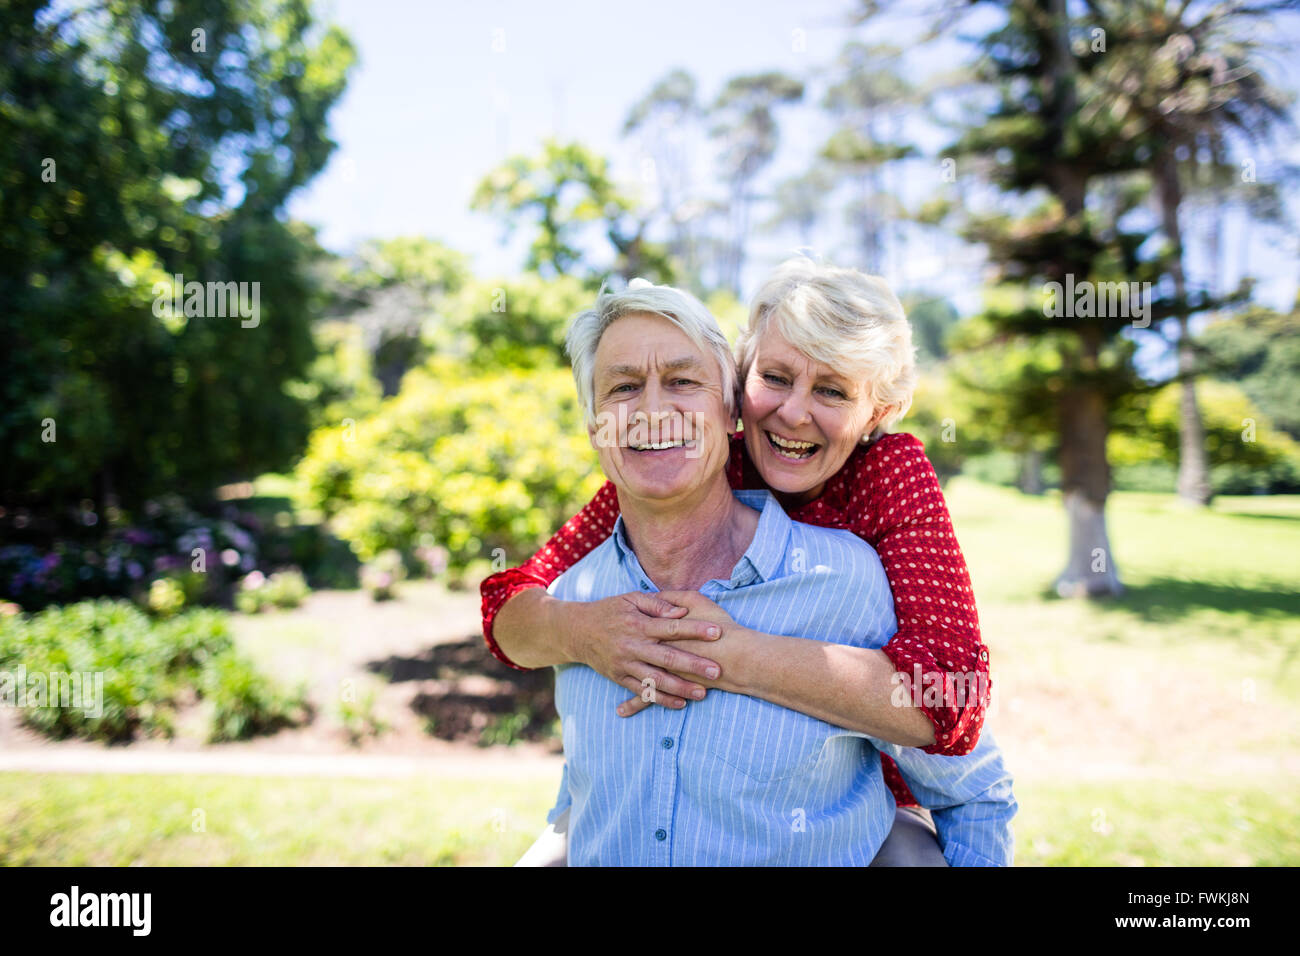 Happy senior man giving a piggy back to senior woman Photo Stock